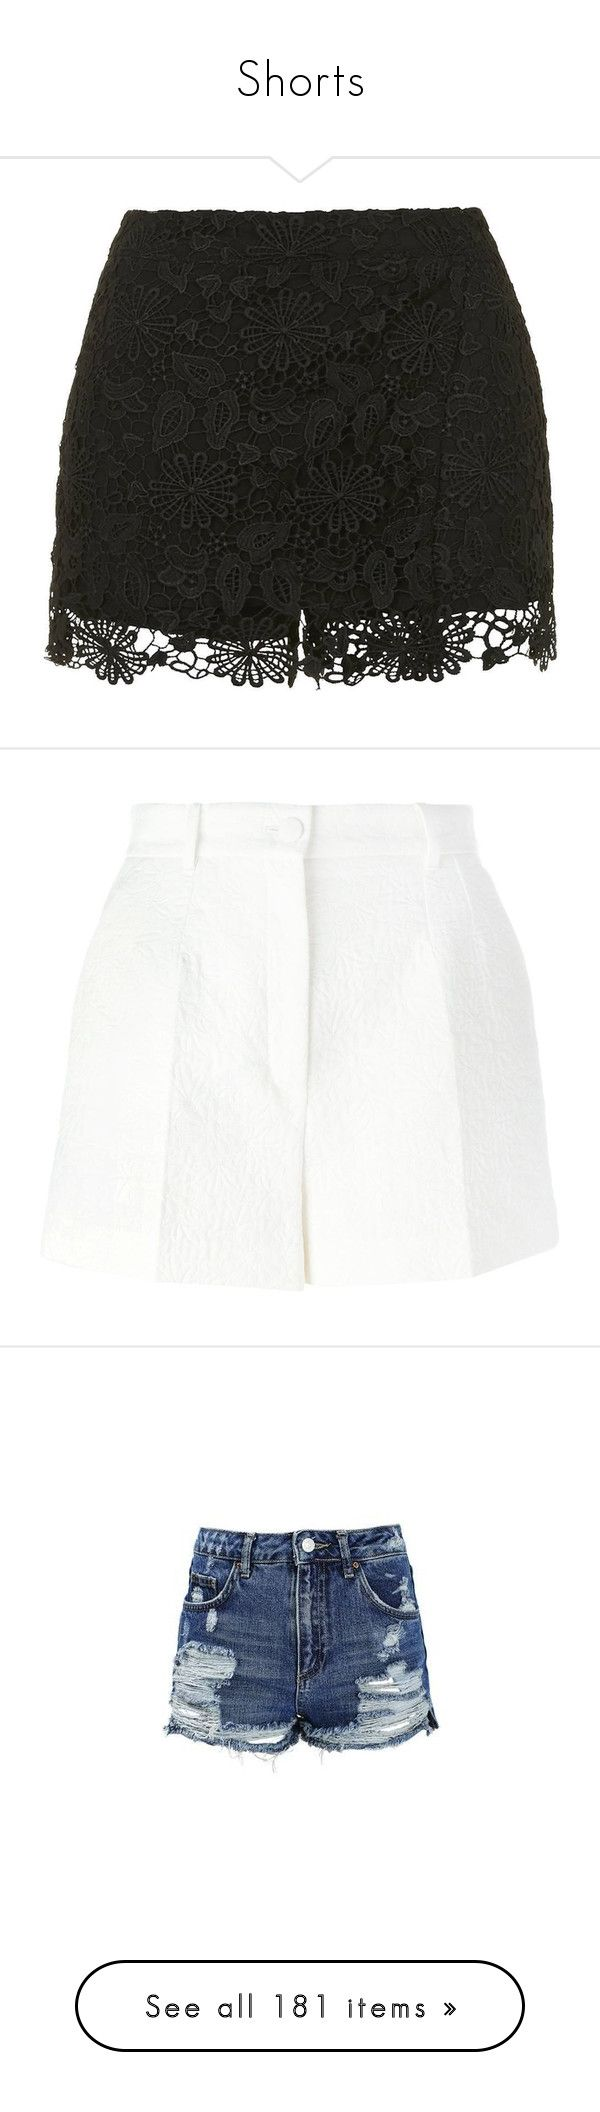 """Shorts"" by piggy-nl ❤ liked on Polyvore featuring shorts, black, crochet shorts, crochet hot pants, hot shorts, wrap shorts, micro shorts, short, pants and bottoms"